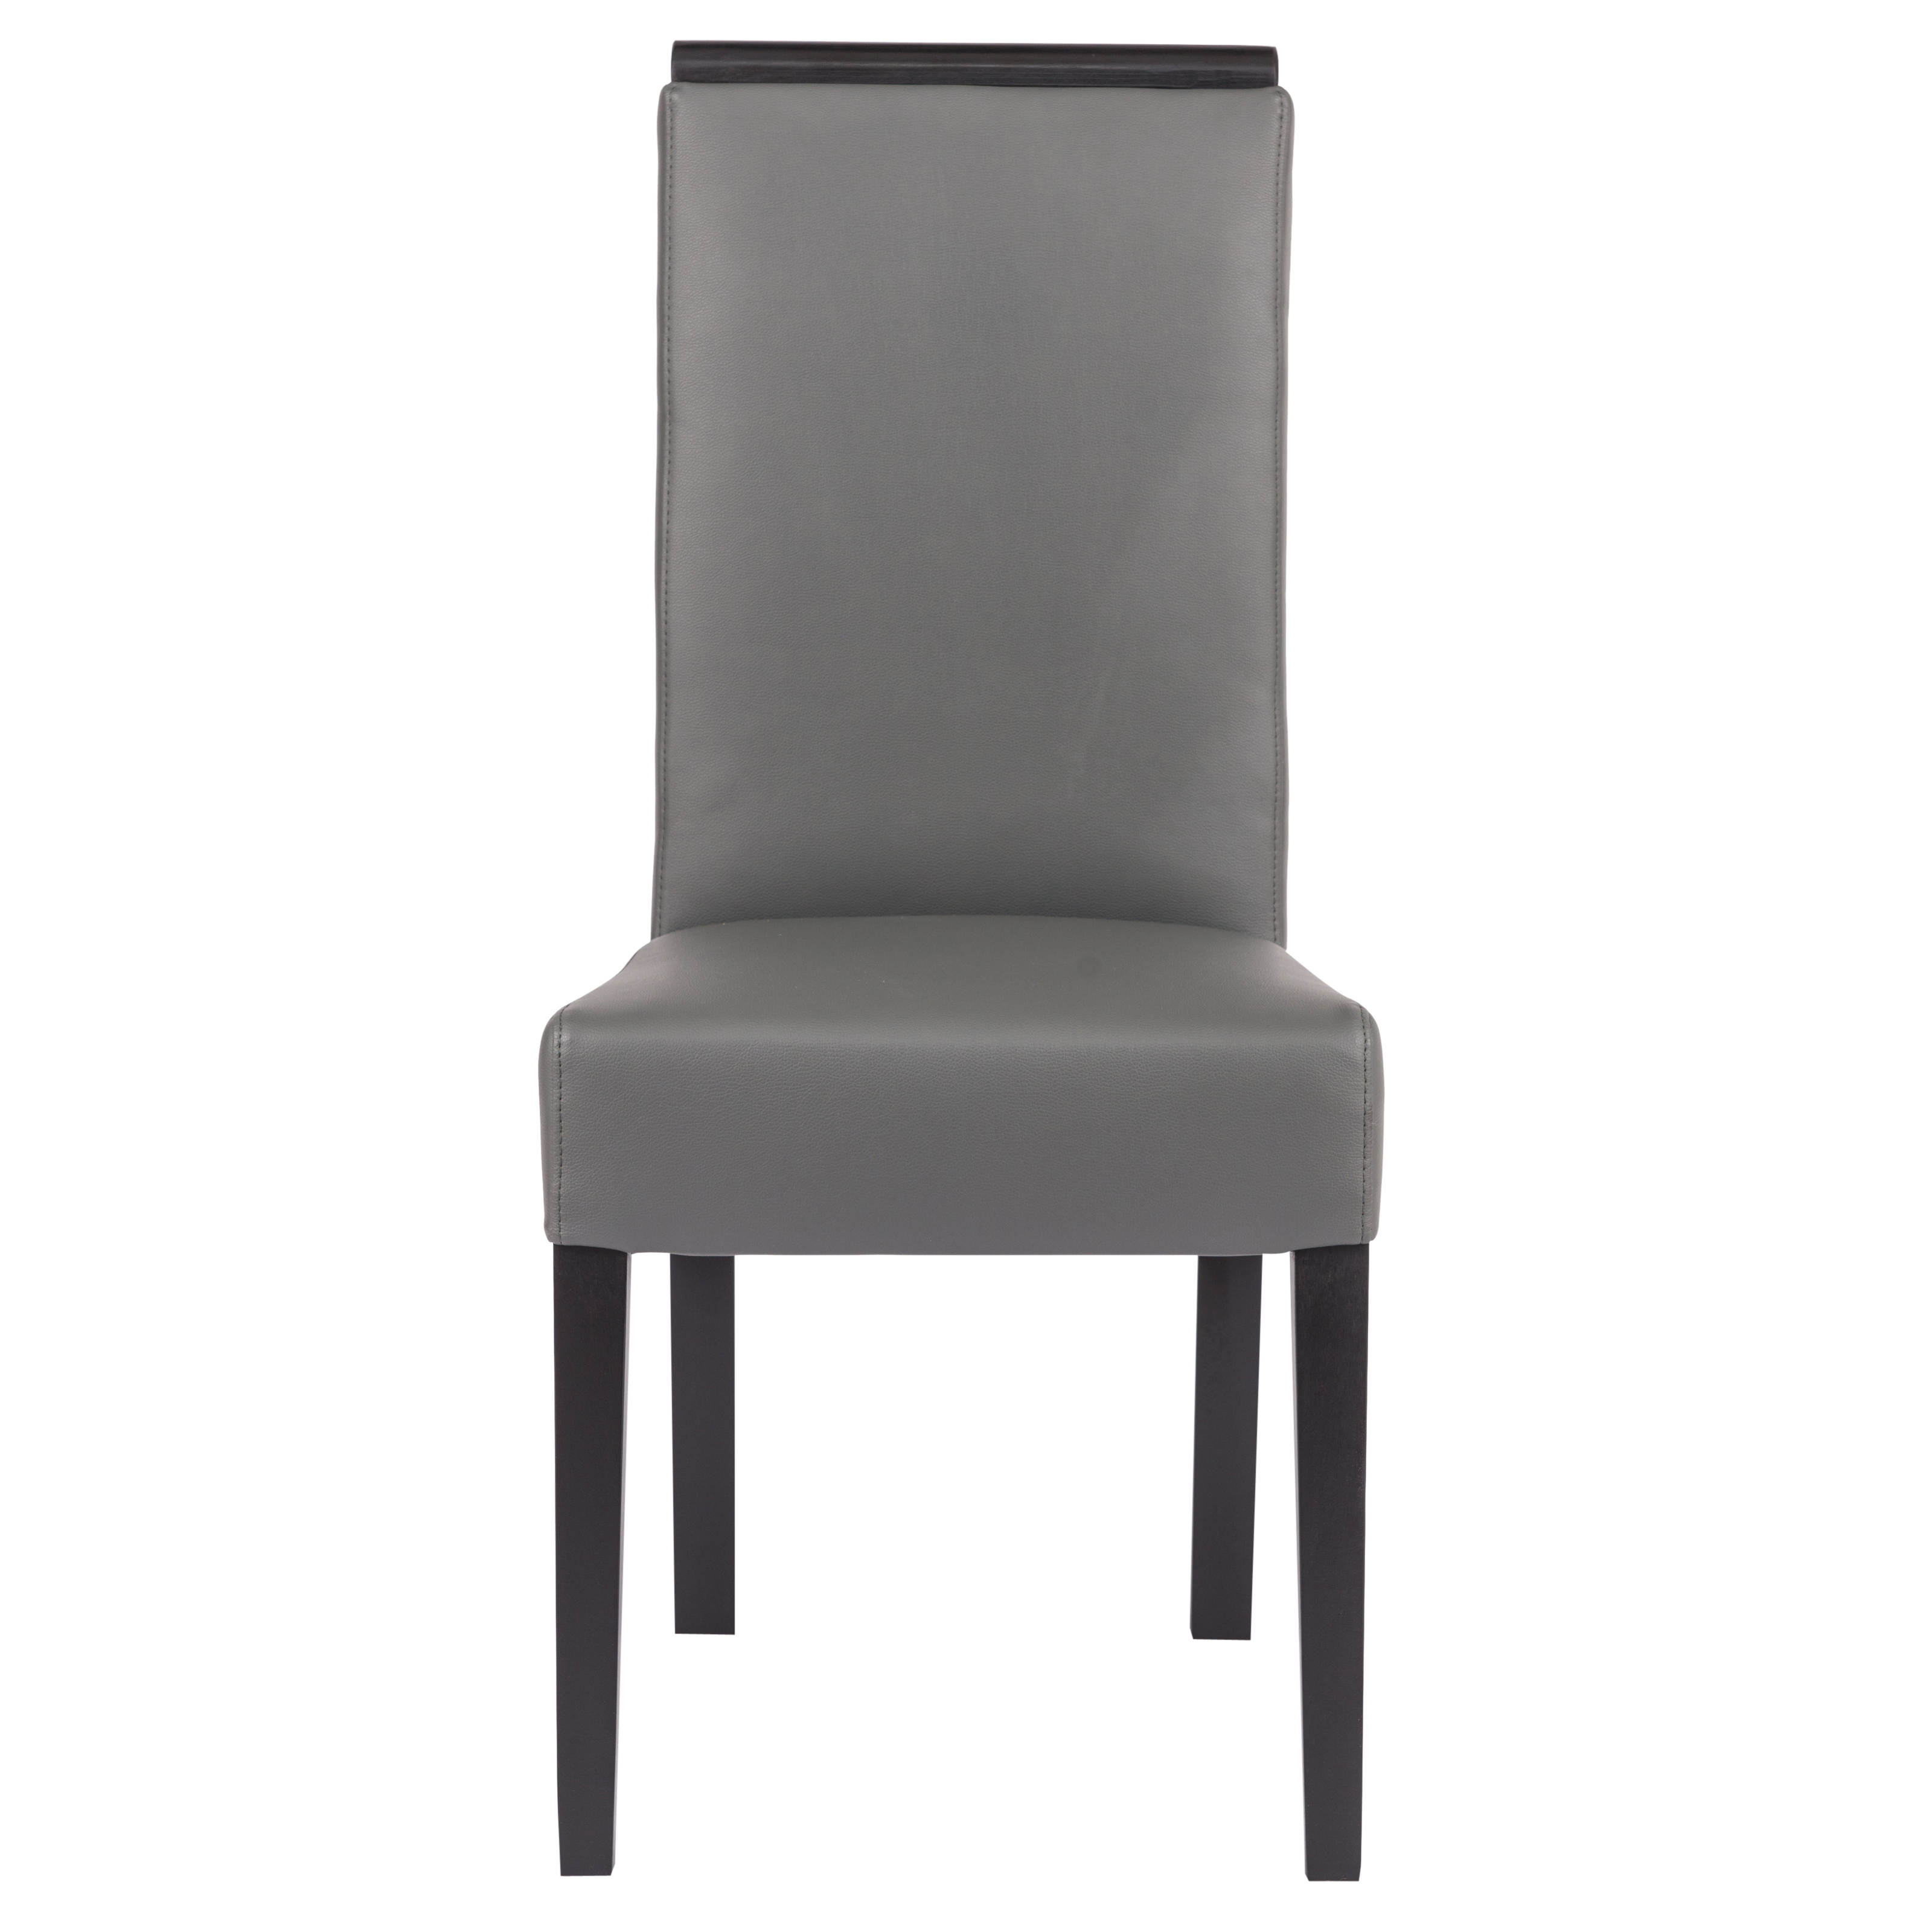 Magnificent Leisuremod Elroy Grey Faux Leather Dining Chair Unemploymentrelief Wooden Chair Designs For Living Room Unemploymentrelieforg